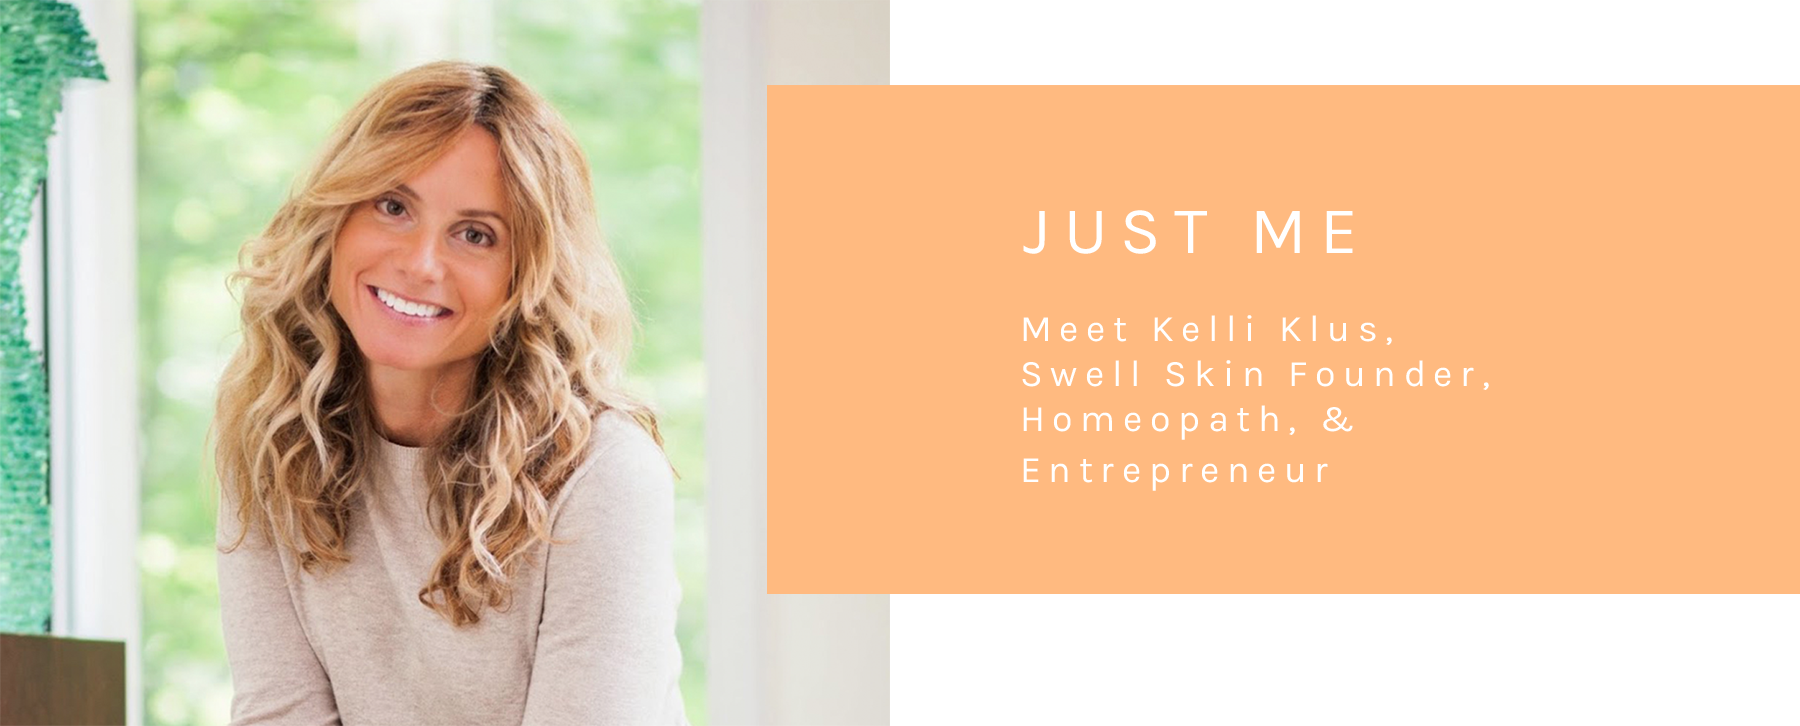 Just Me - About Kelli Klus - Swell Skin LLC Founder, Homeopath, & Entrepreneur